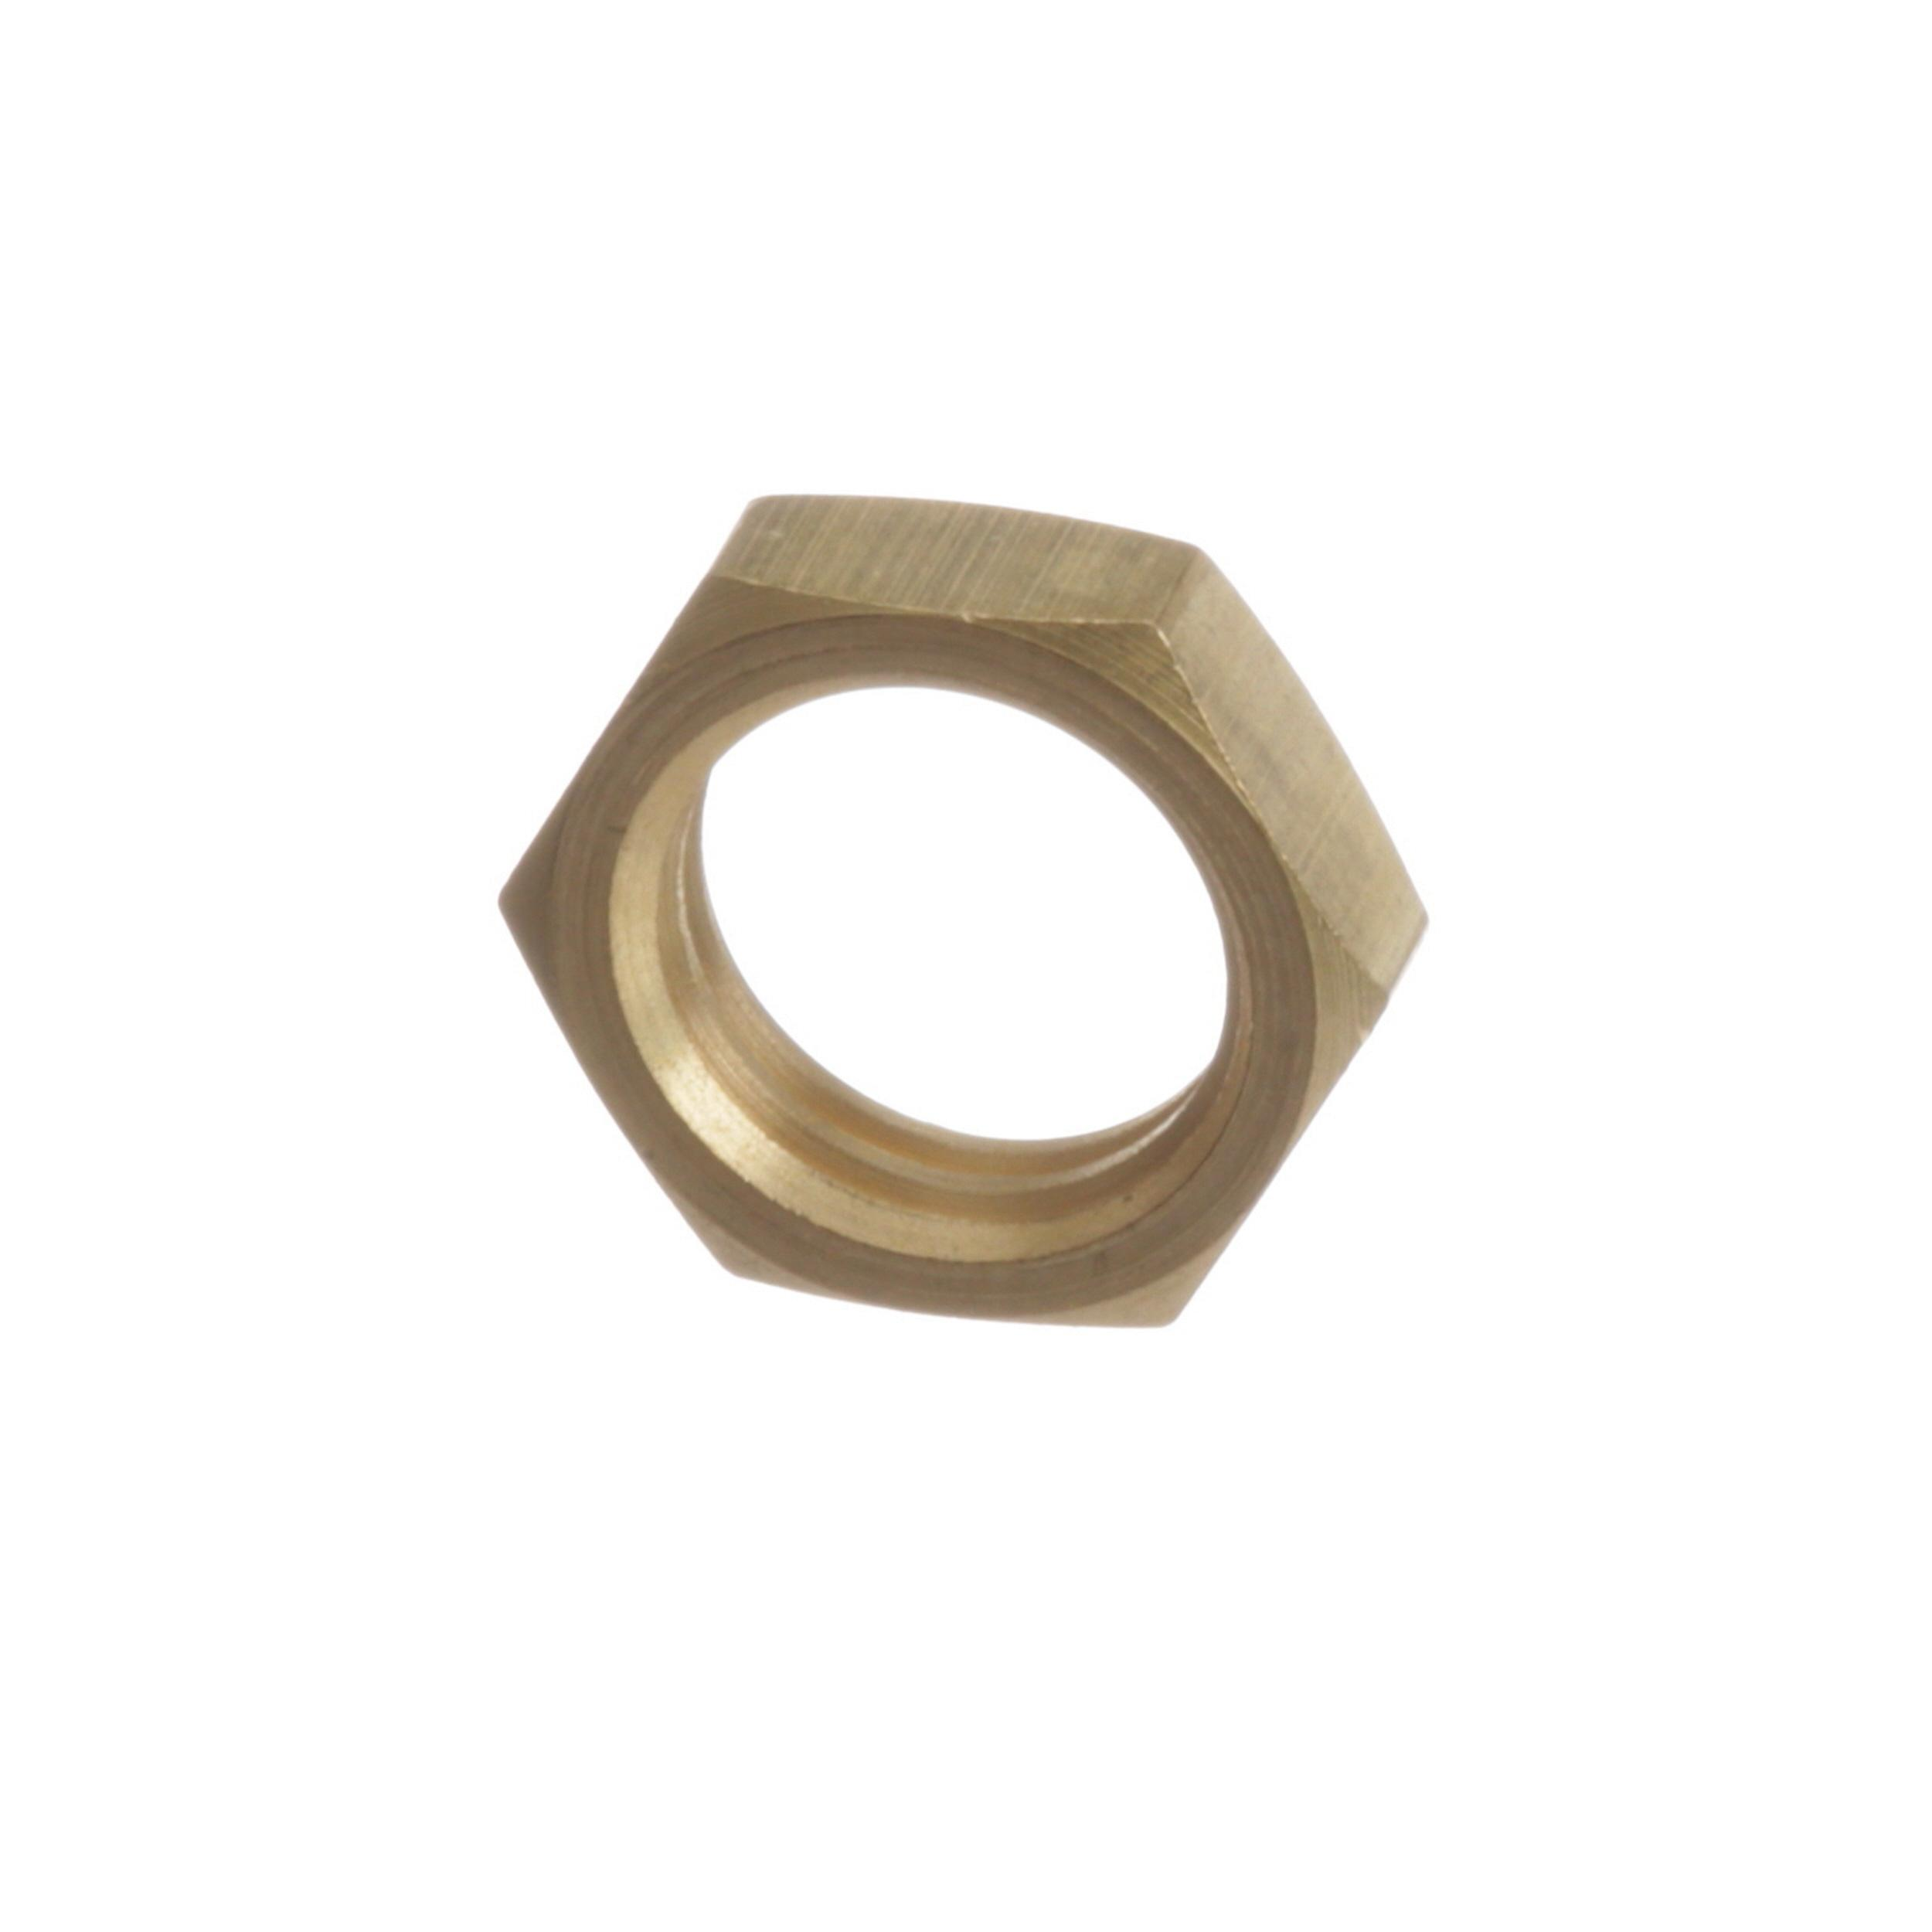 GARLAND M8 X 1 BRASS NUT